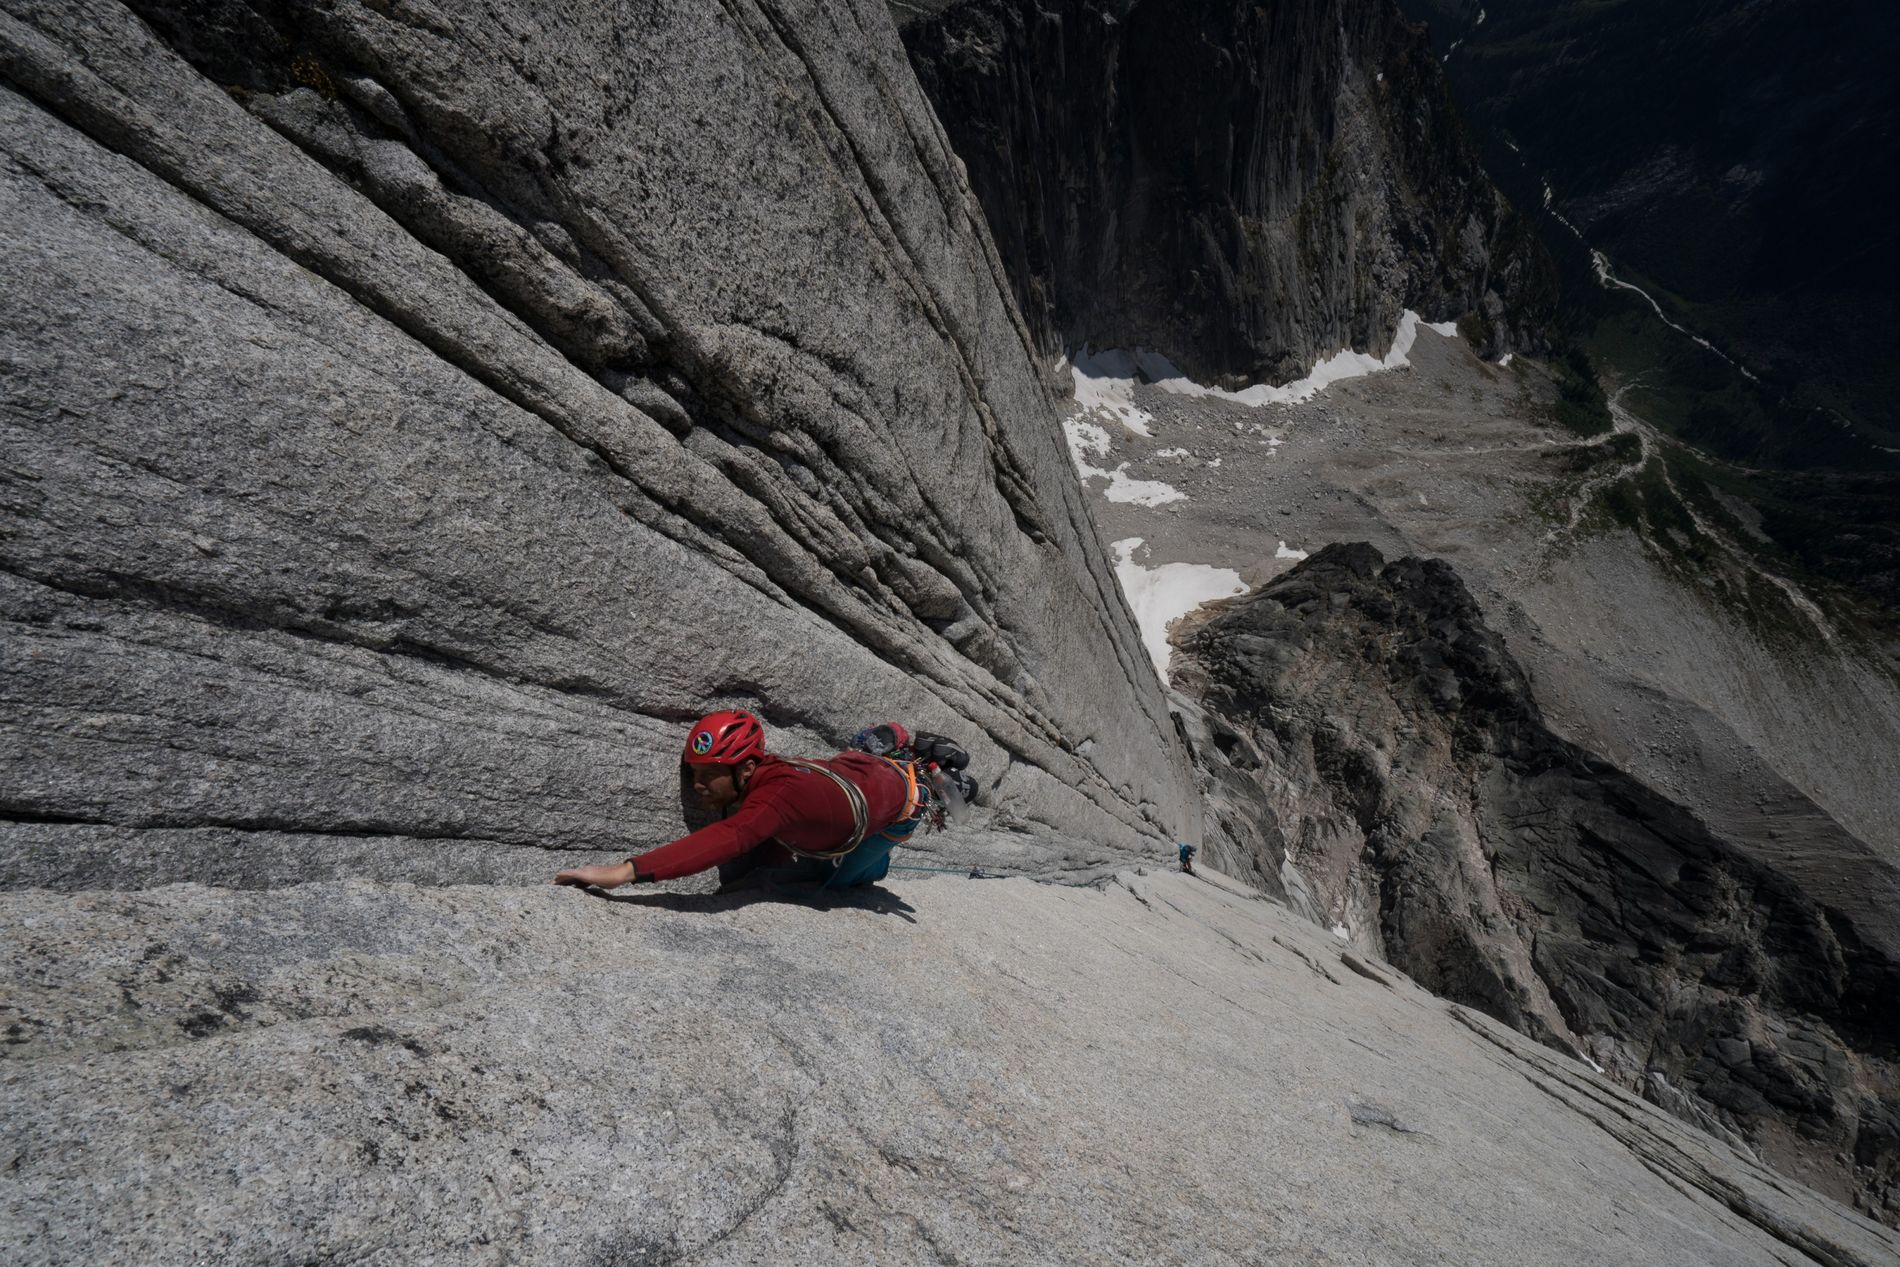 Leo Houlding on the incredible 250m crux corner of the North Tower. The 1000m long climb ...